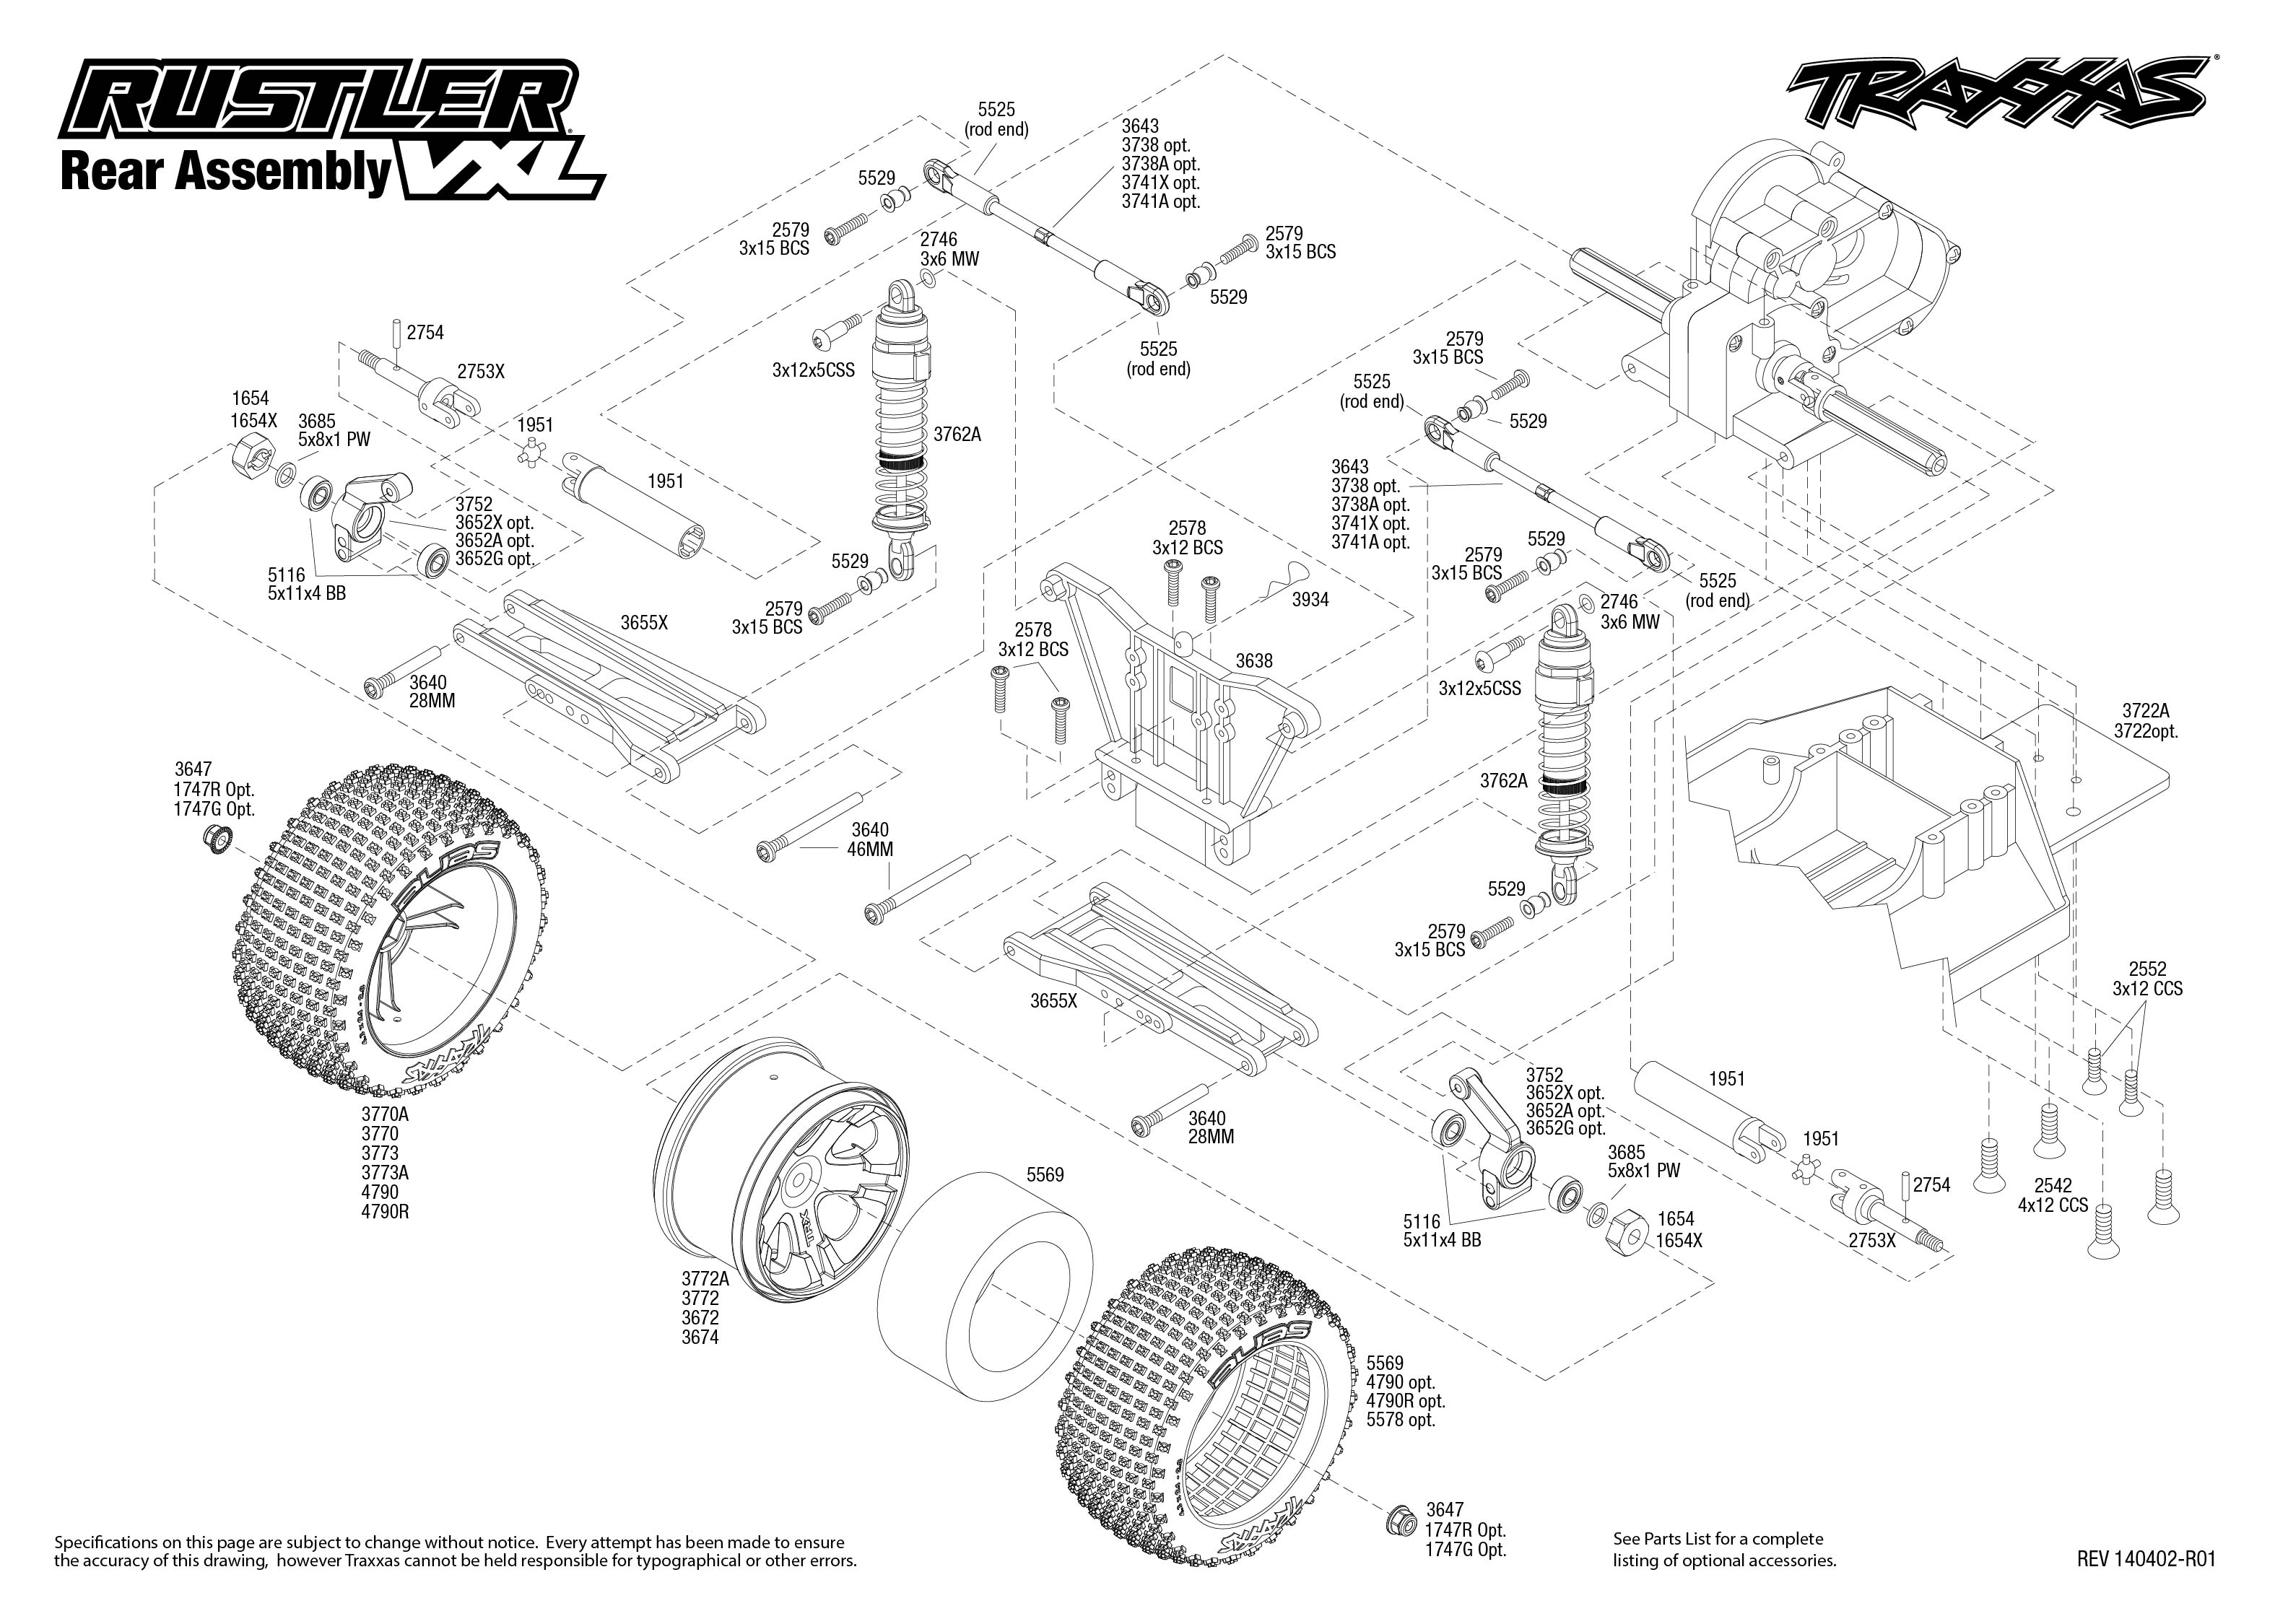 rustler vxl 37076 rear assembly traxxas : traxxas rustler diagram - findchart.co